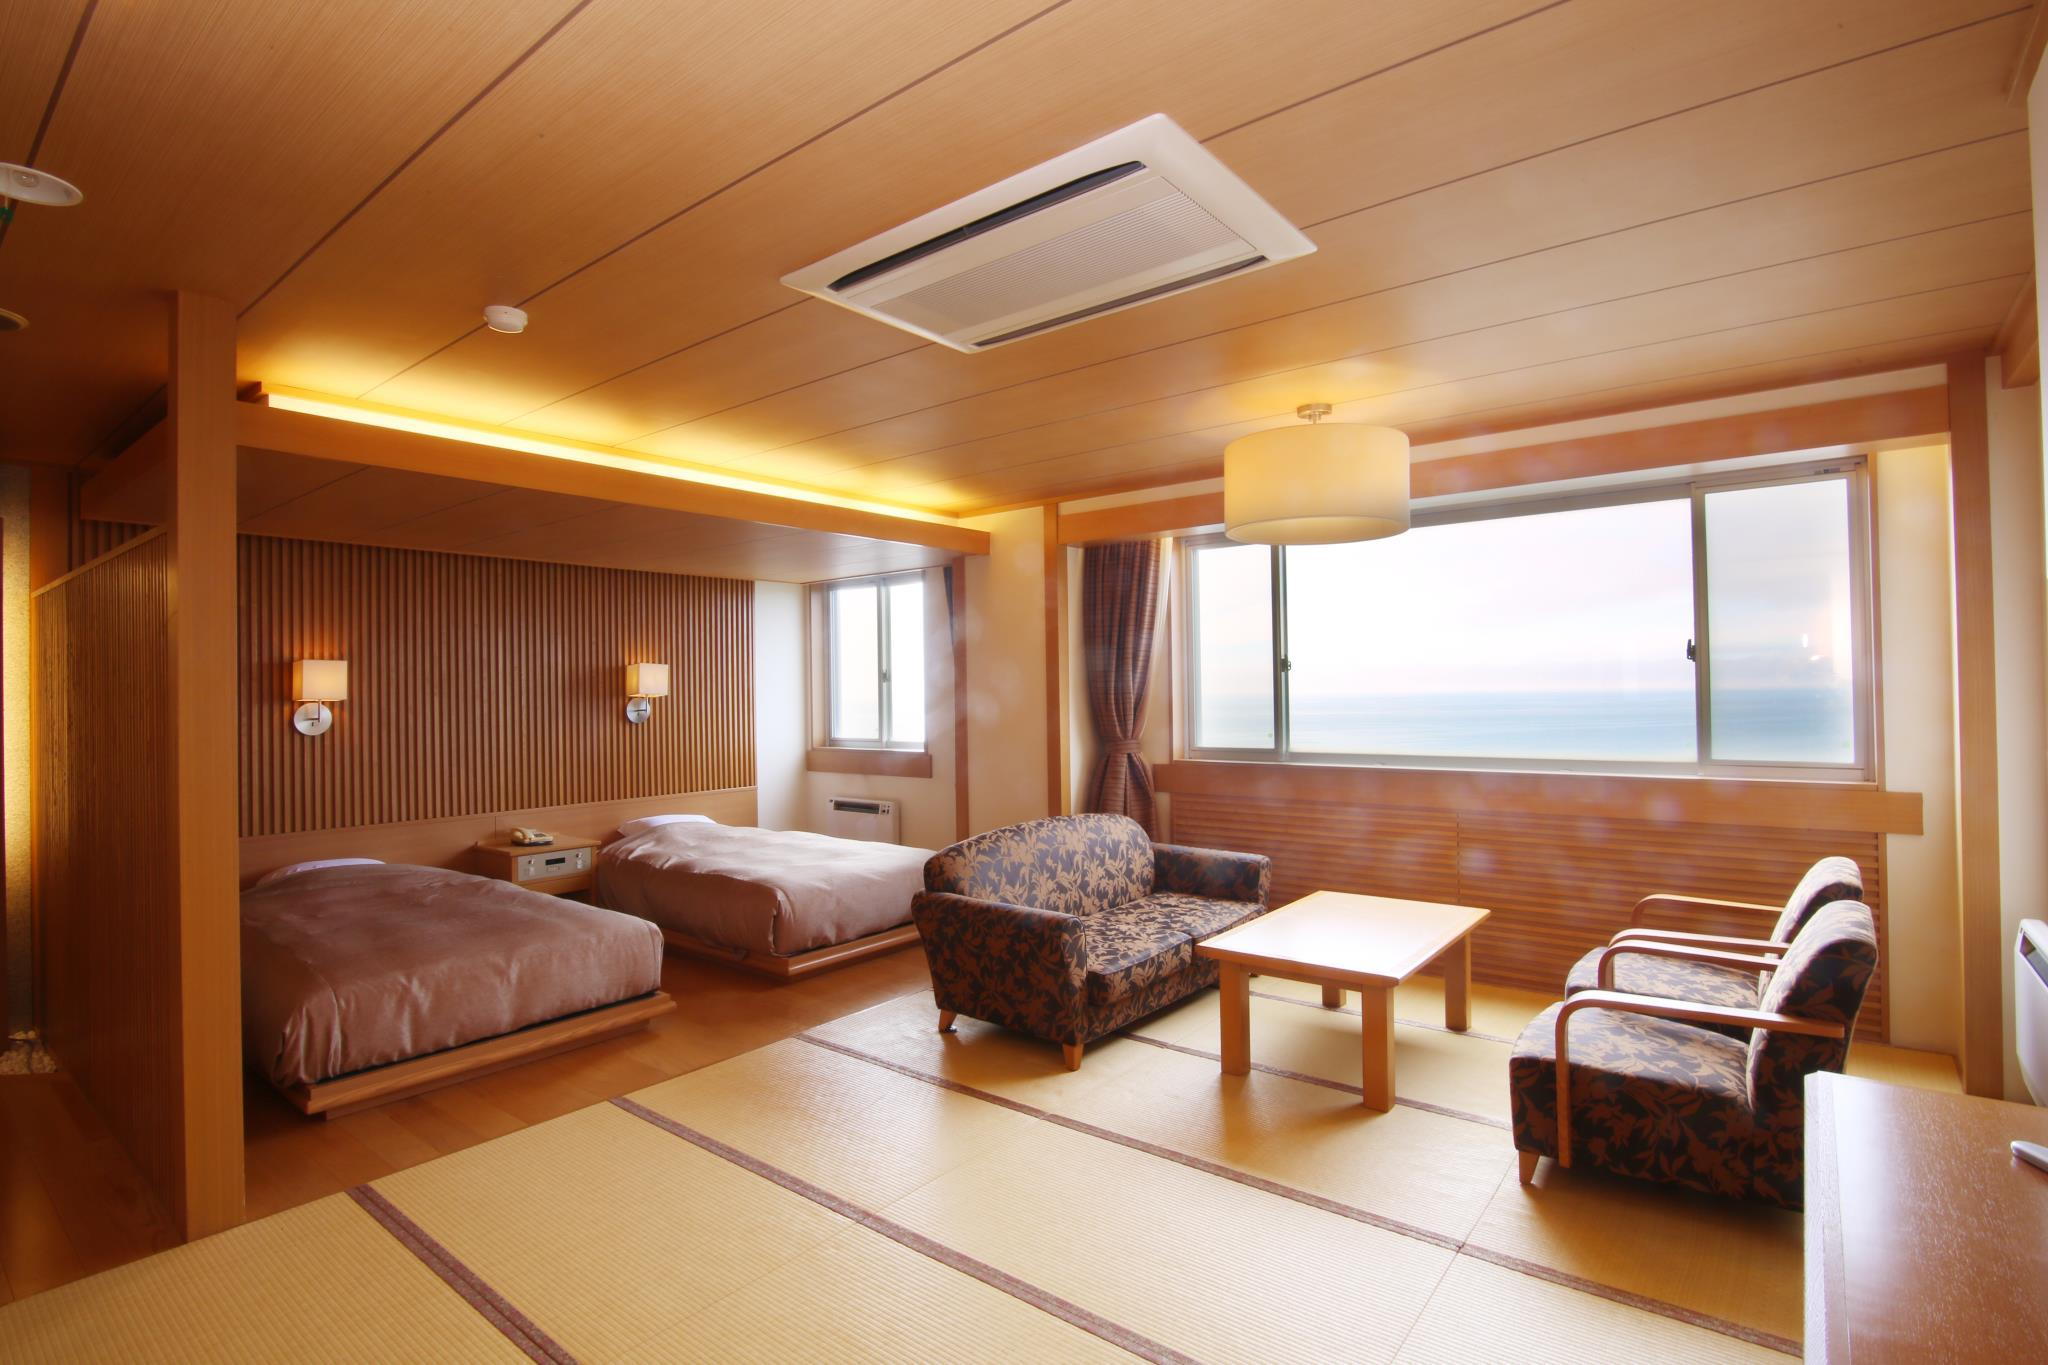 Deluxe Room with Tatami Area for 5 People